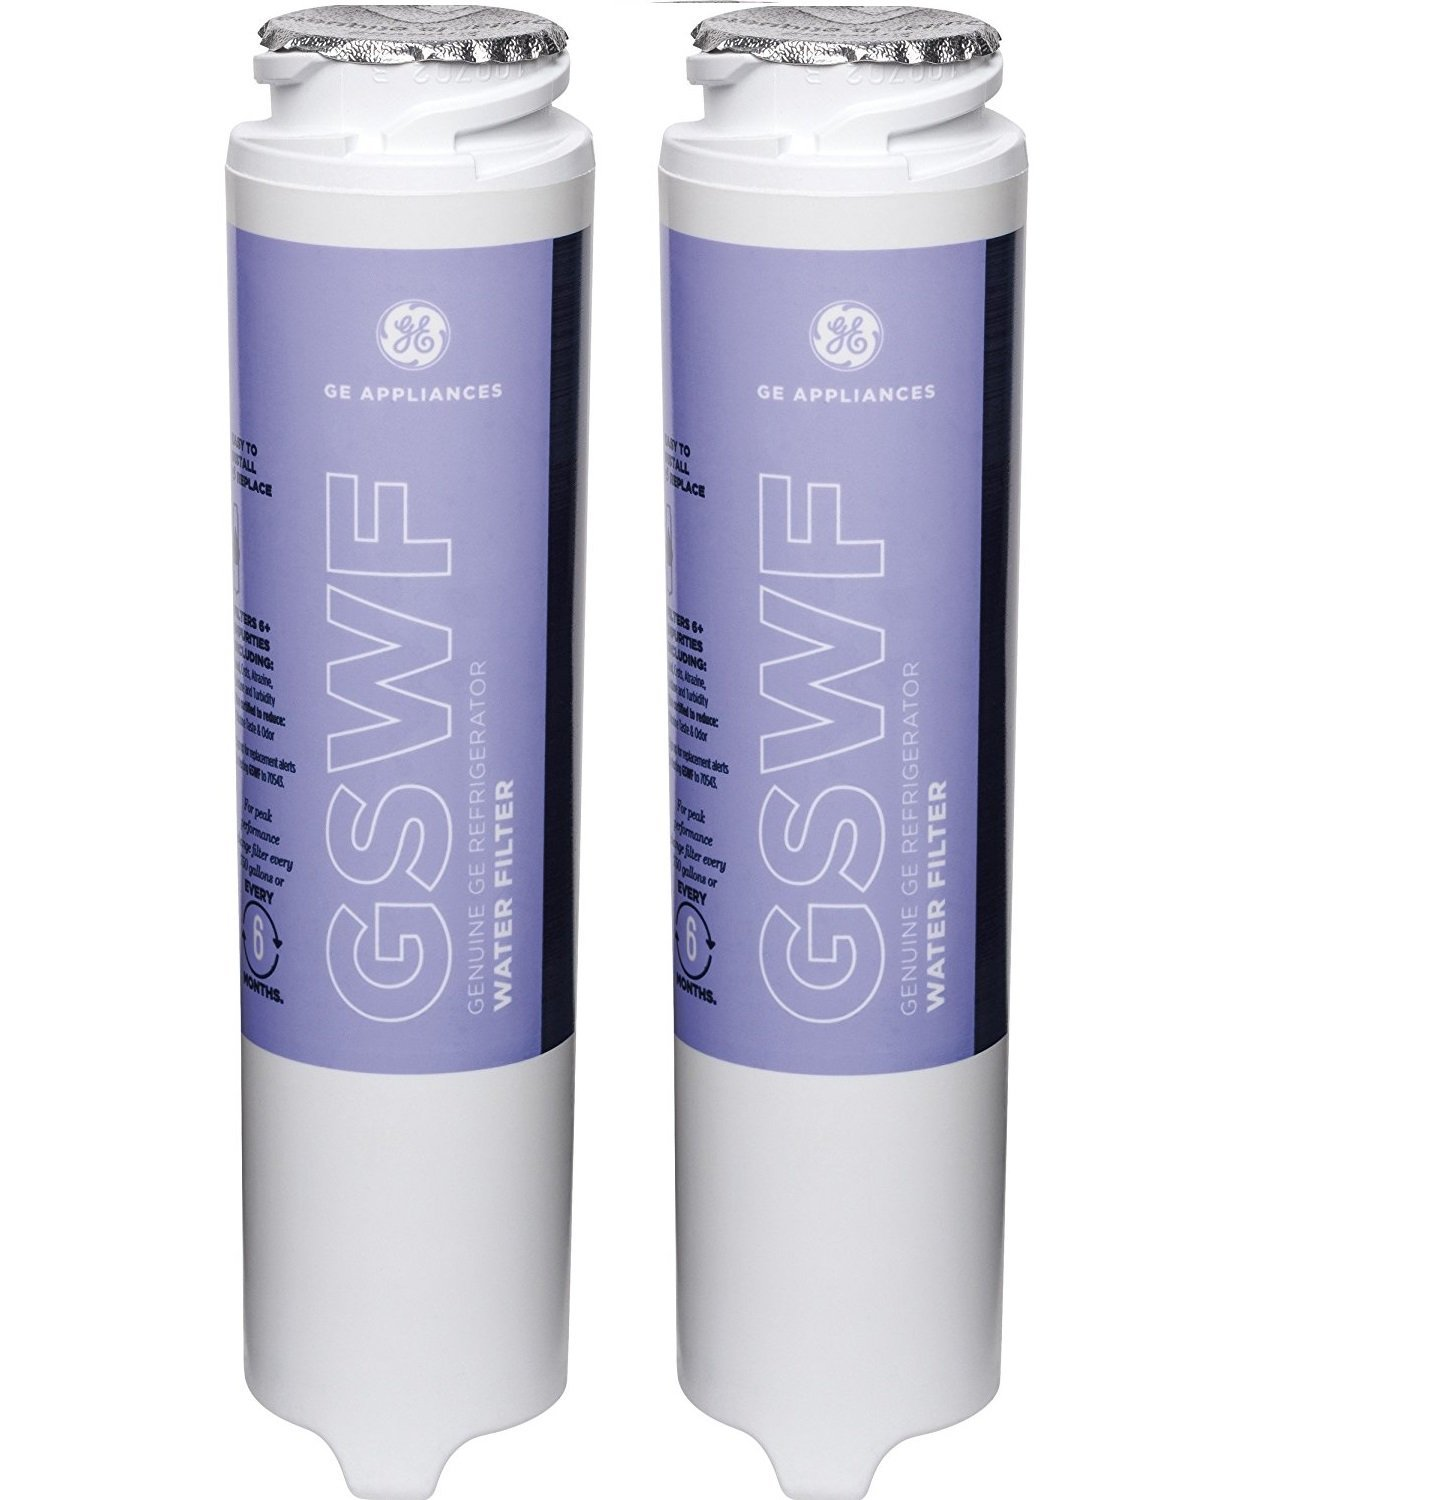 GE GSWF-2 Refrigerator Water Filter 2-Pack